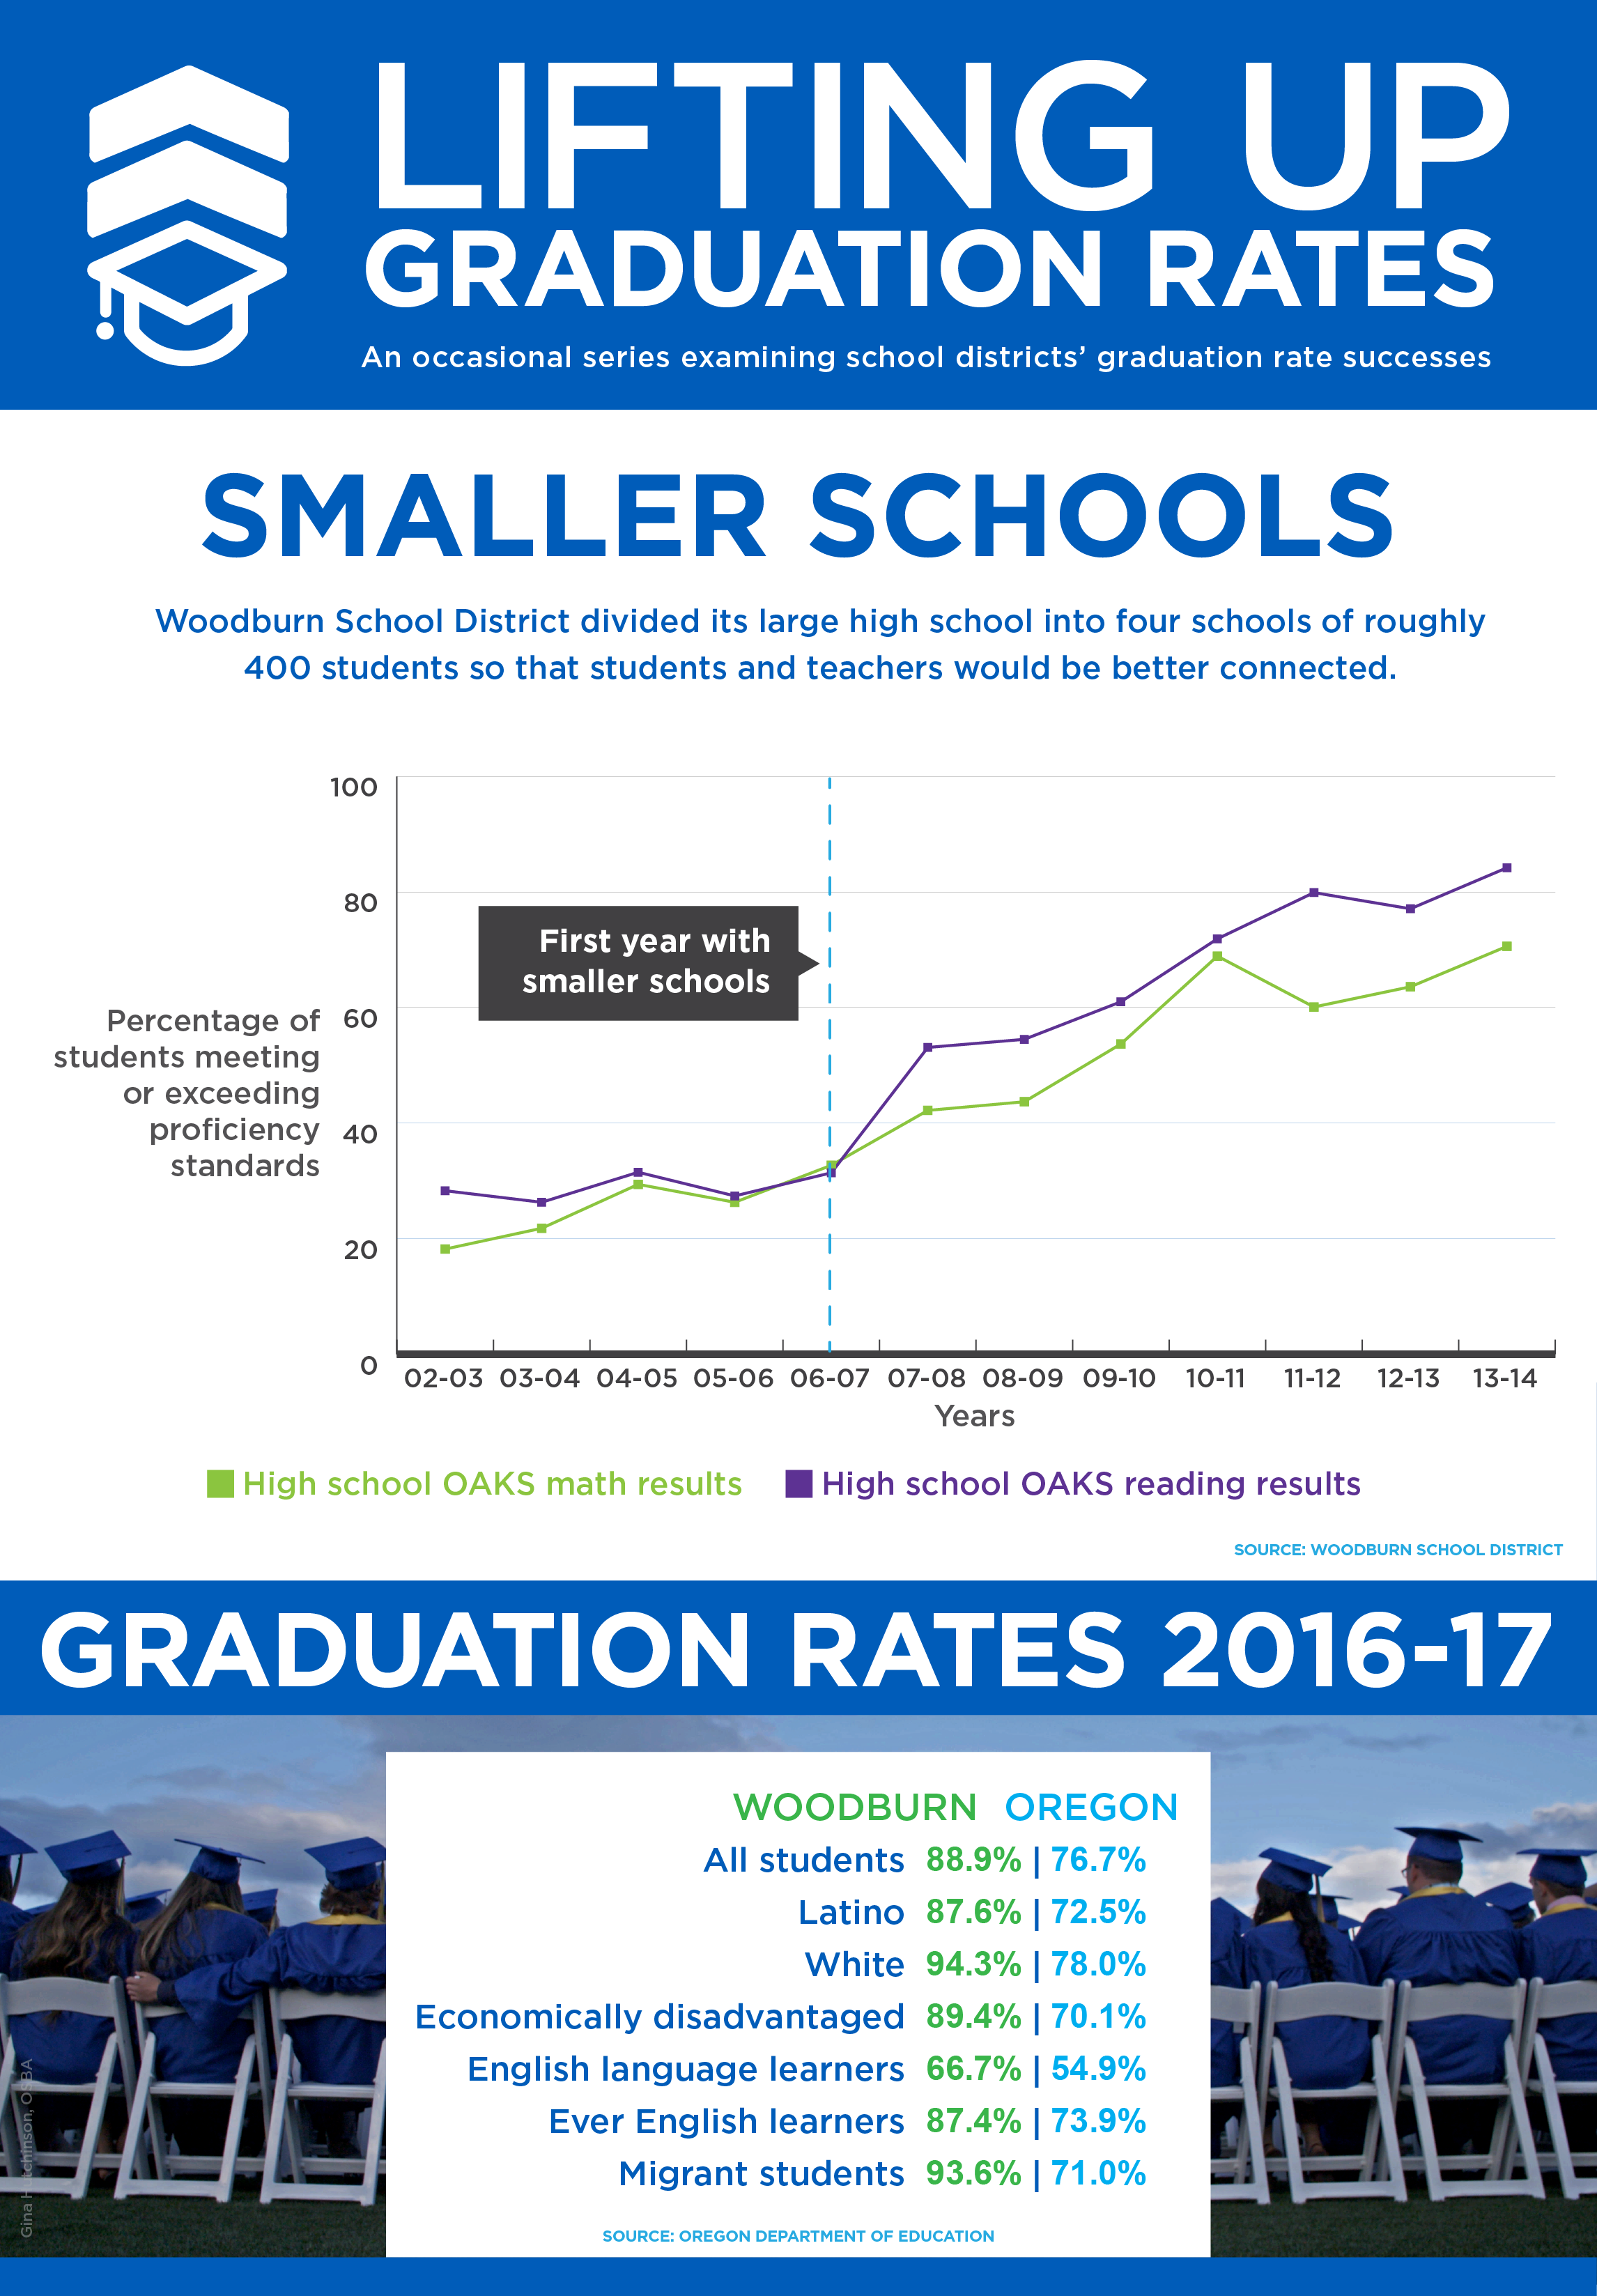 Graphic for Woodburn SD graduation rates